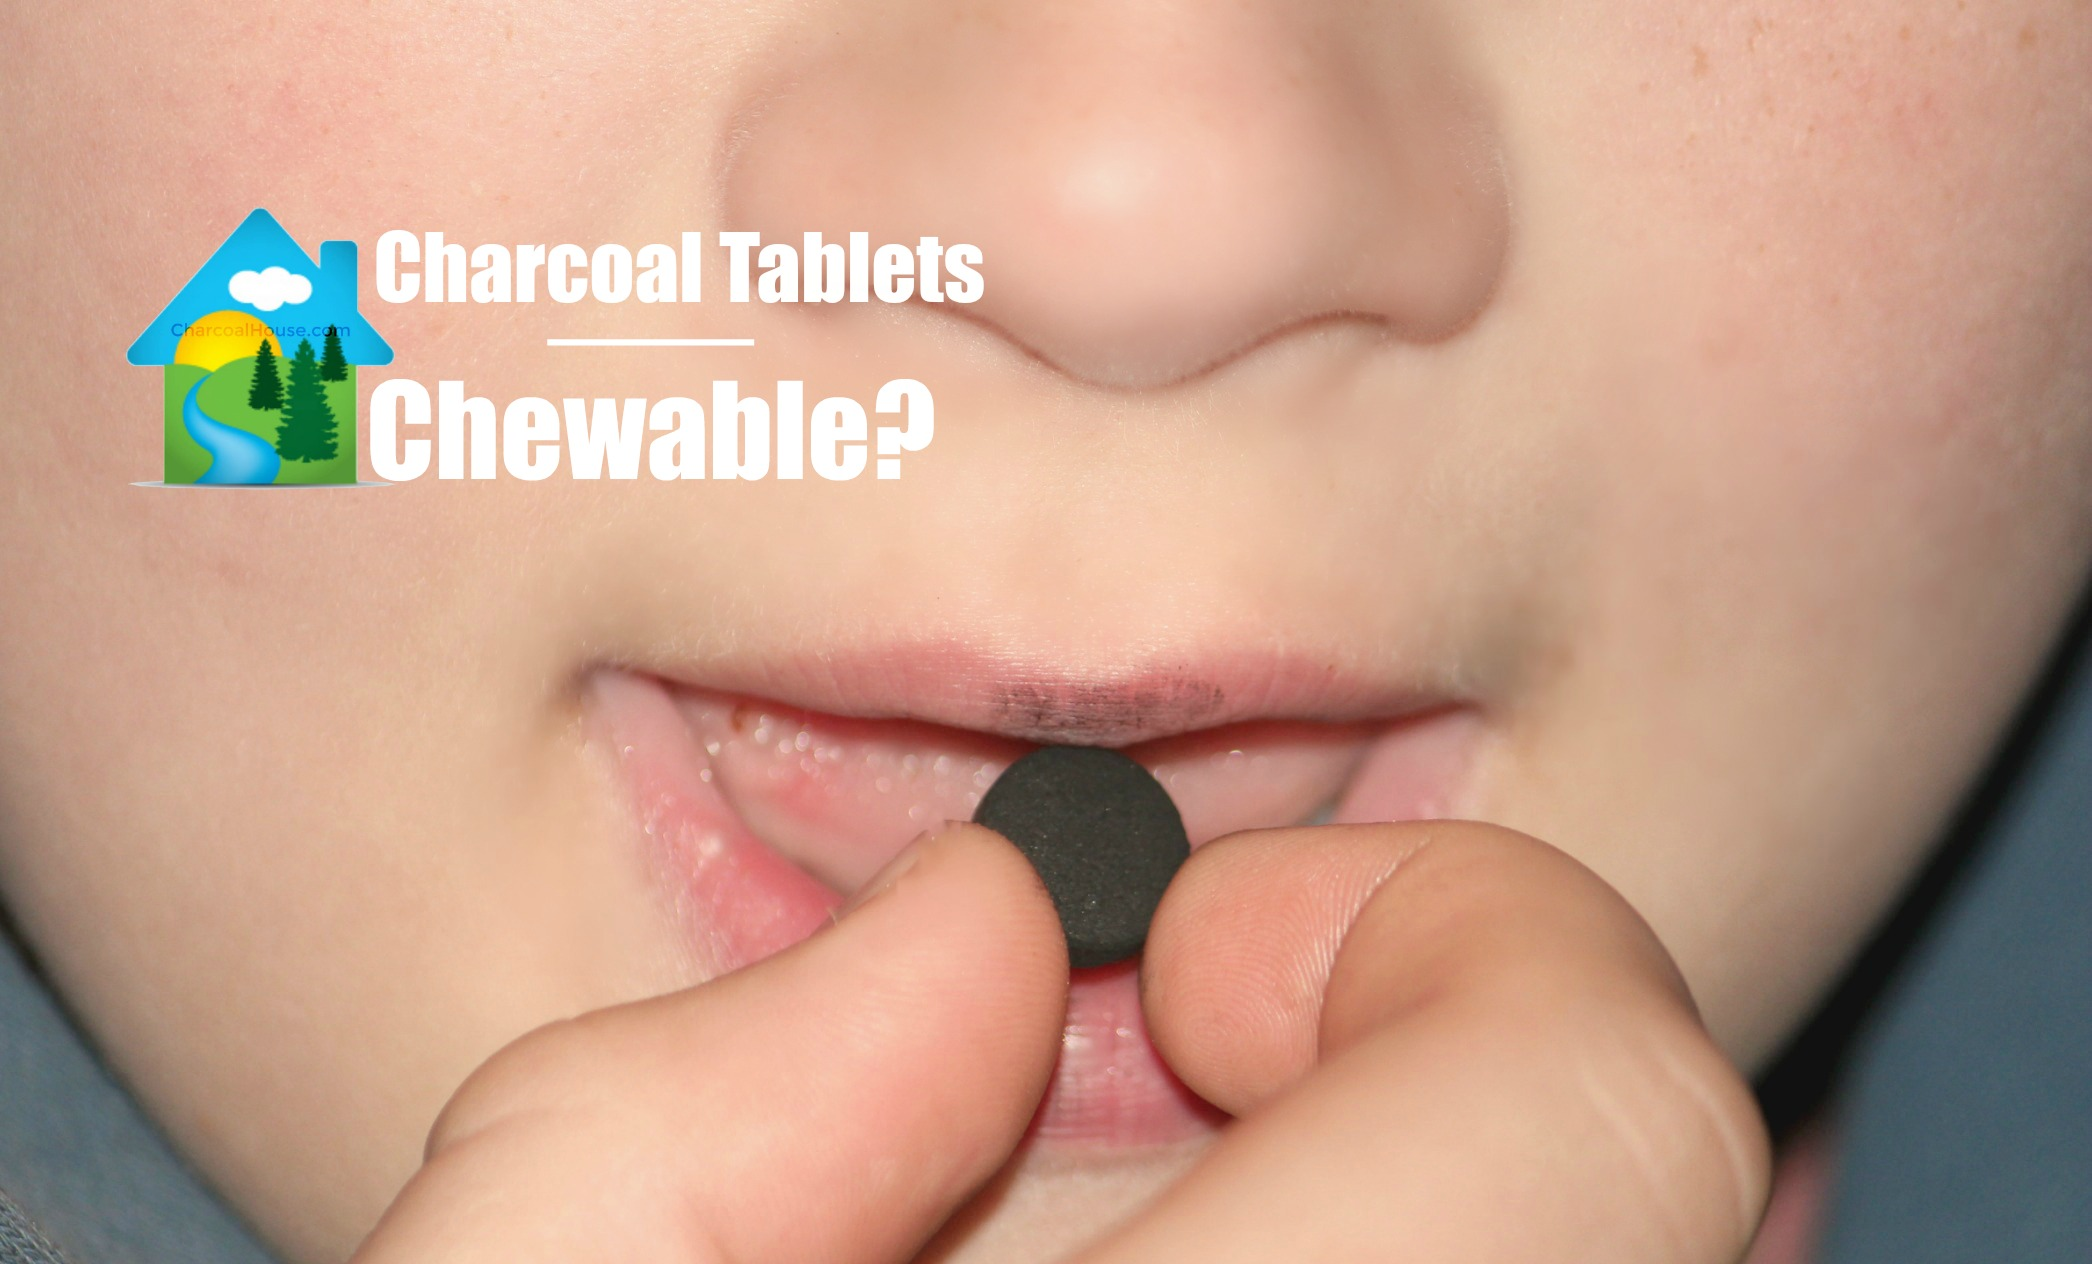 chewable charcoal tablets header - Are your Charcoal Tablets Chewable?